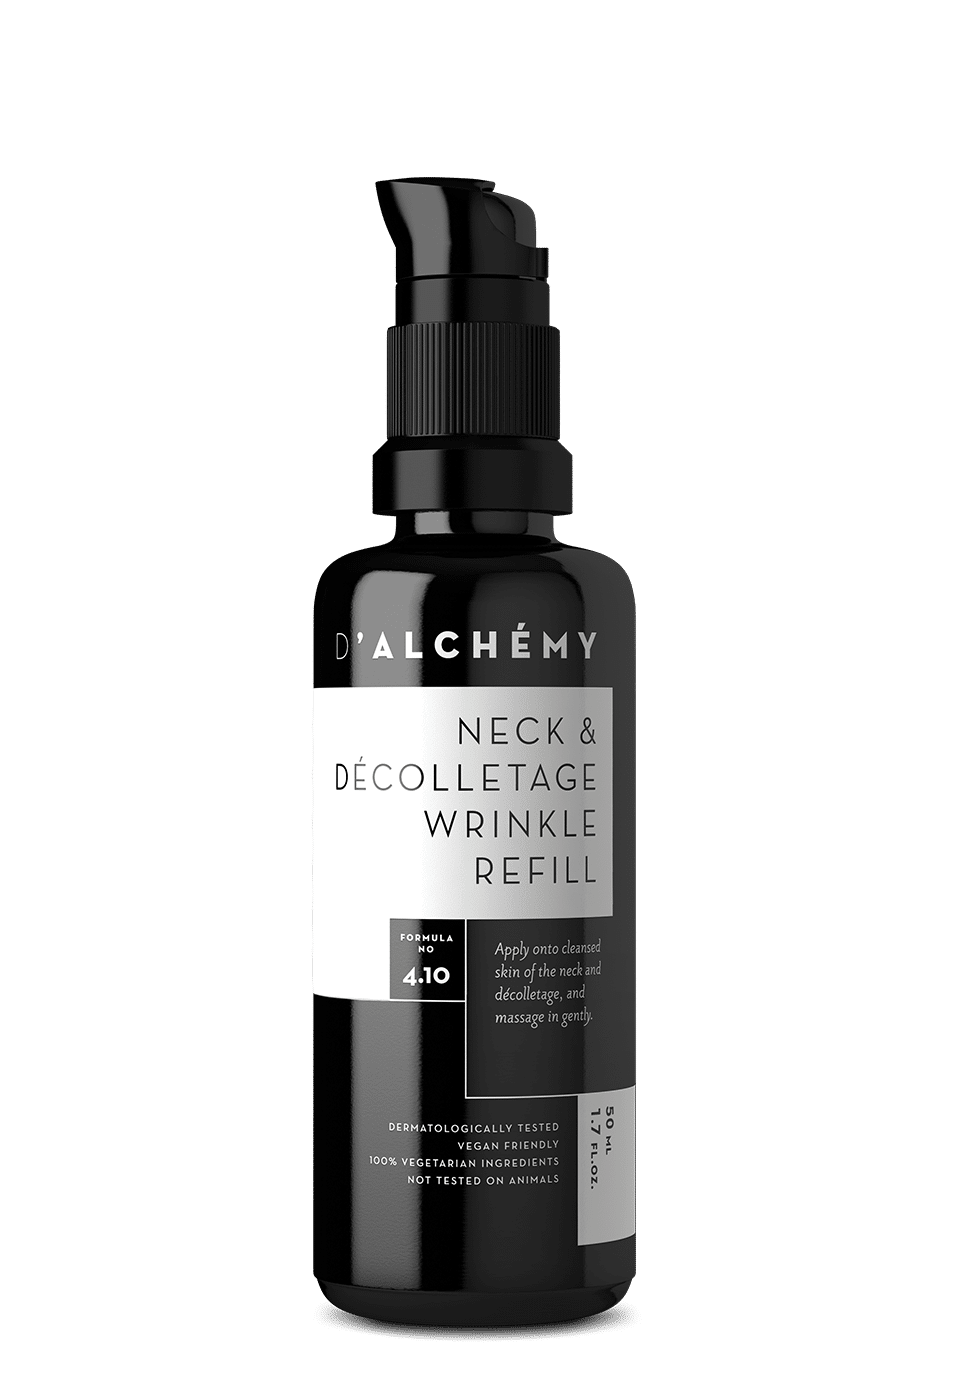 NECK & DÉCOLLETAGE WRINKLE REFILL